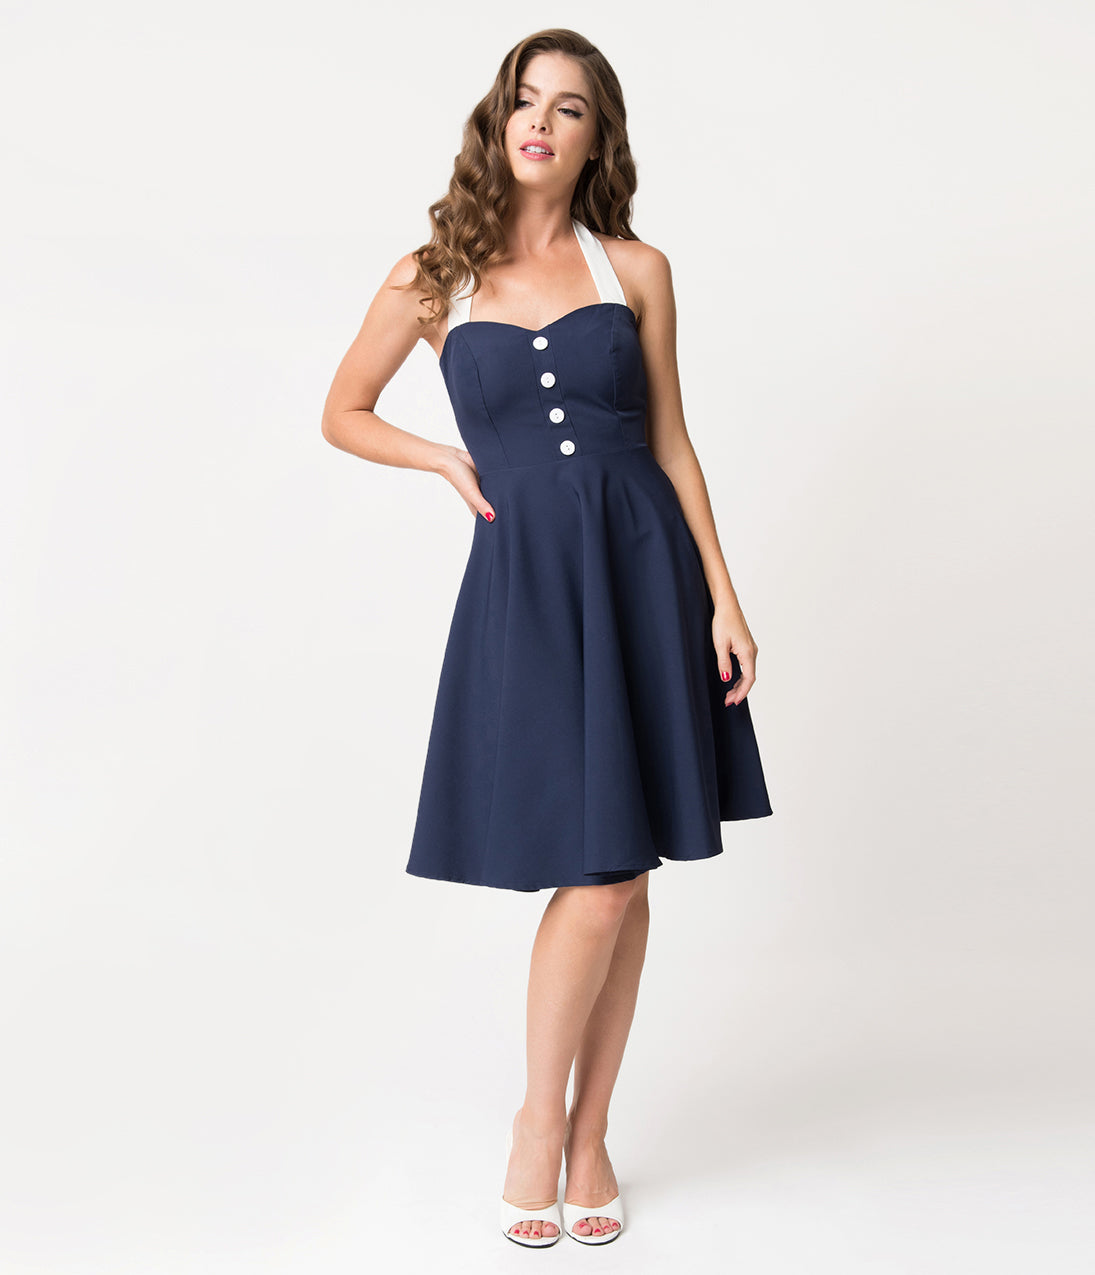 Sailor Dresses, Nautical Dress, Pin Up & WW2 Dresses Navy Blue  White Button Halter Swing Dress $58.00 AT vintagedancer.com